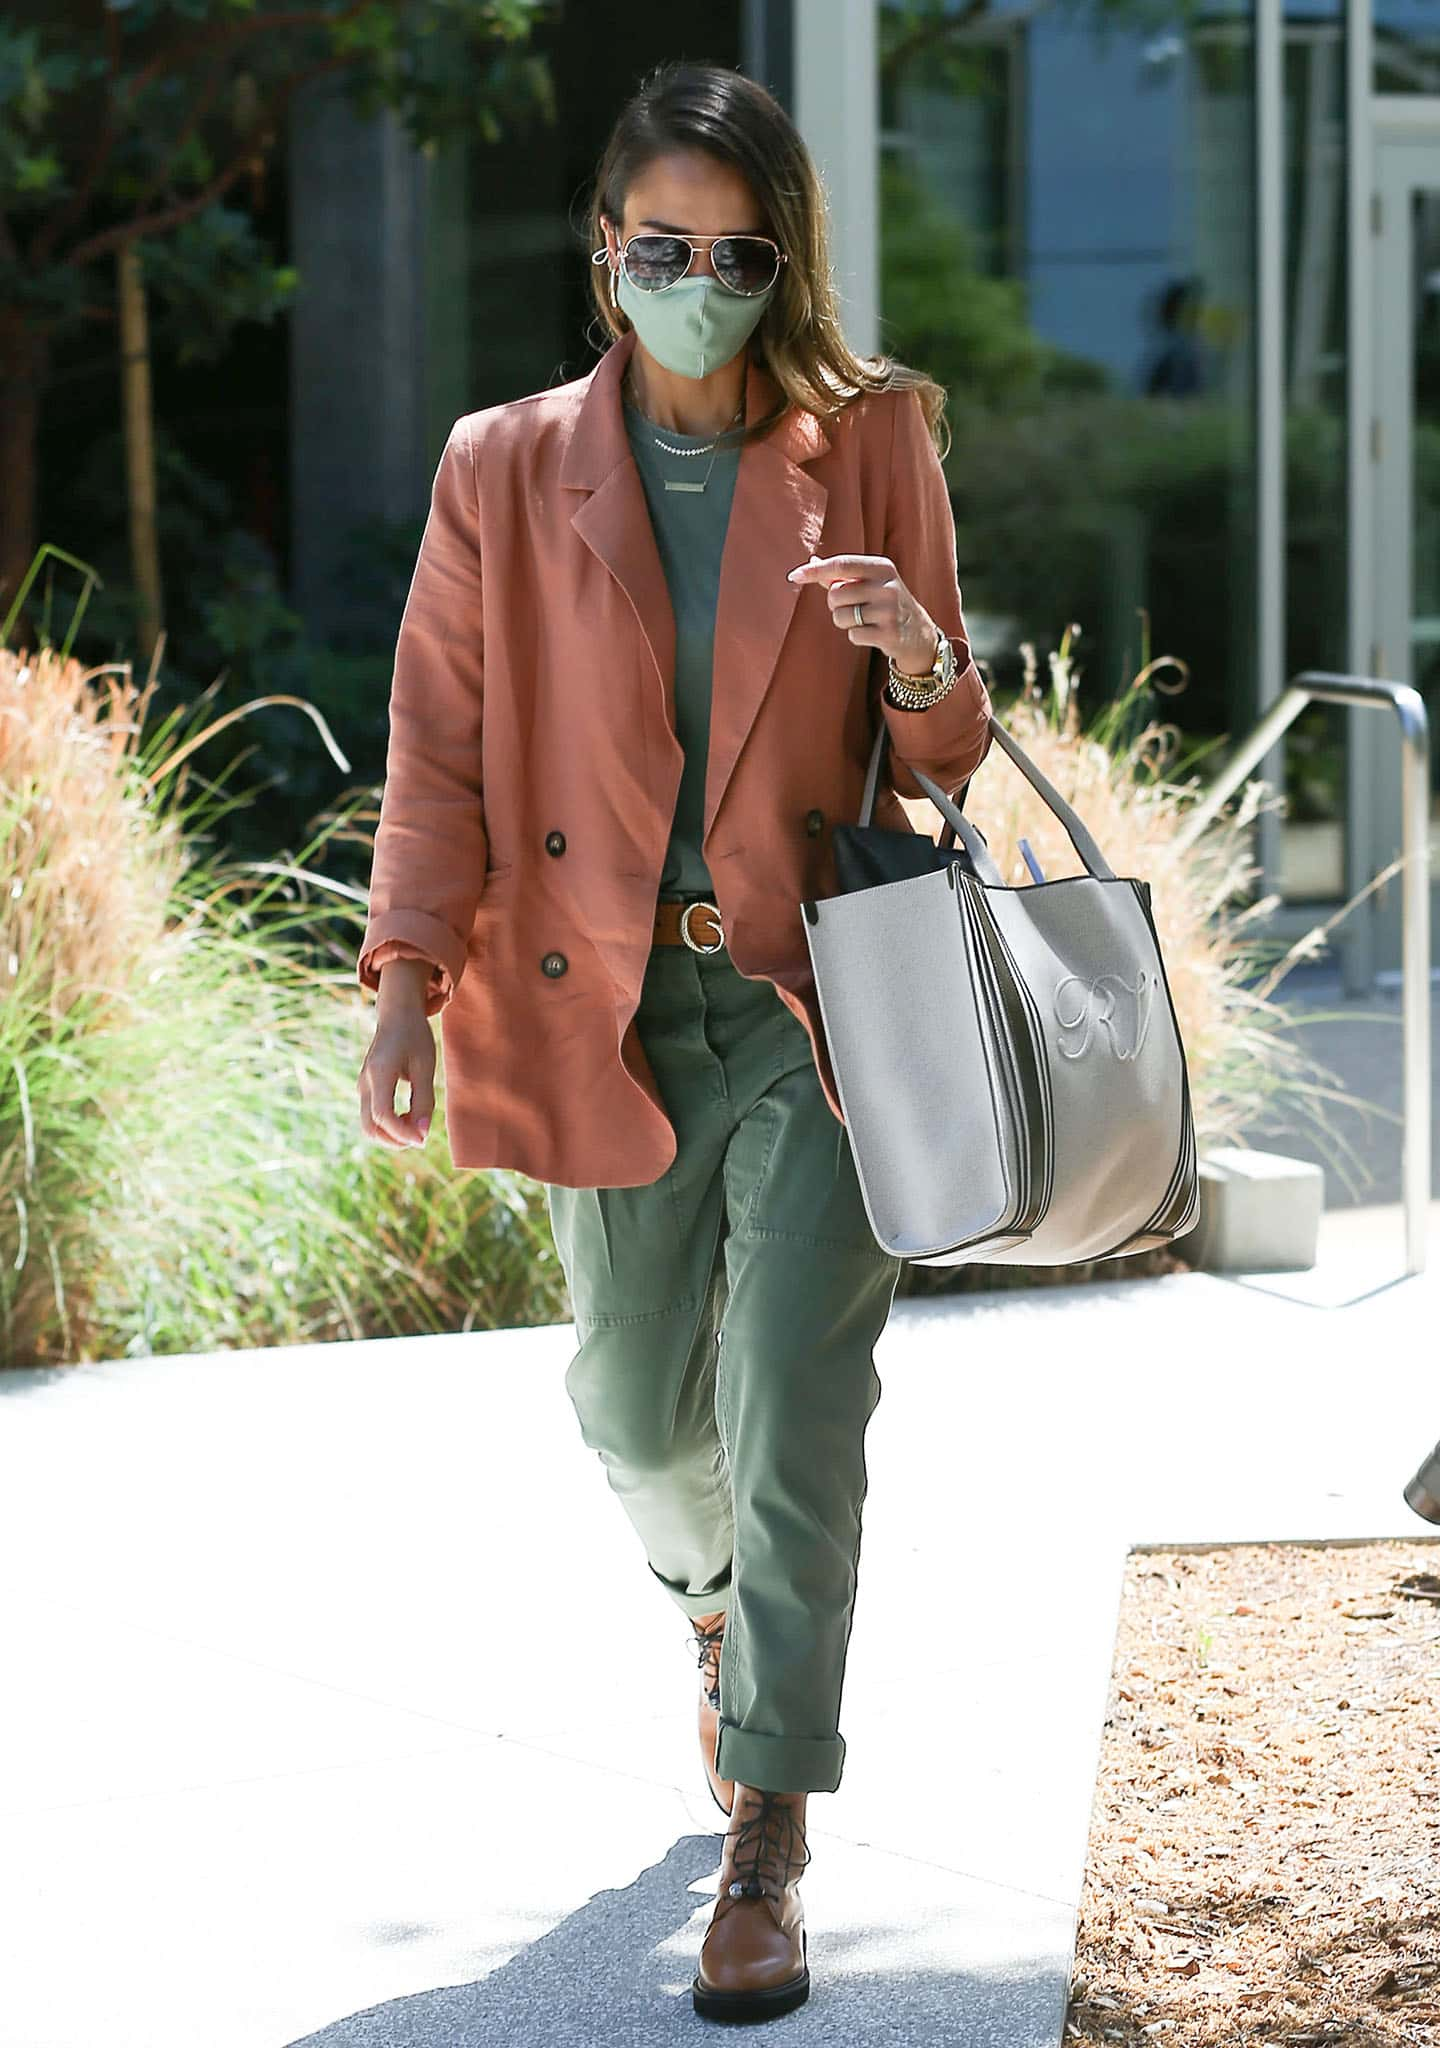 Jessica Alba goes to The Honest Company headquarters in Los Angeles on April 9, 2021